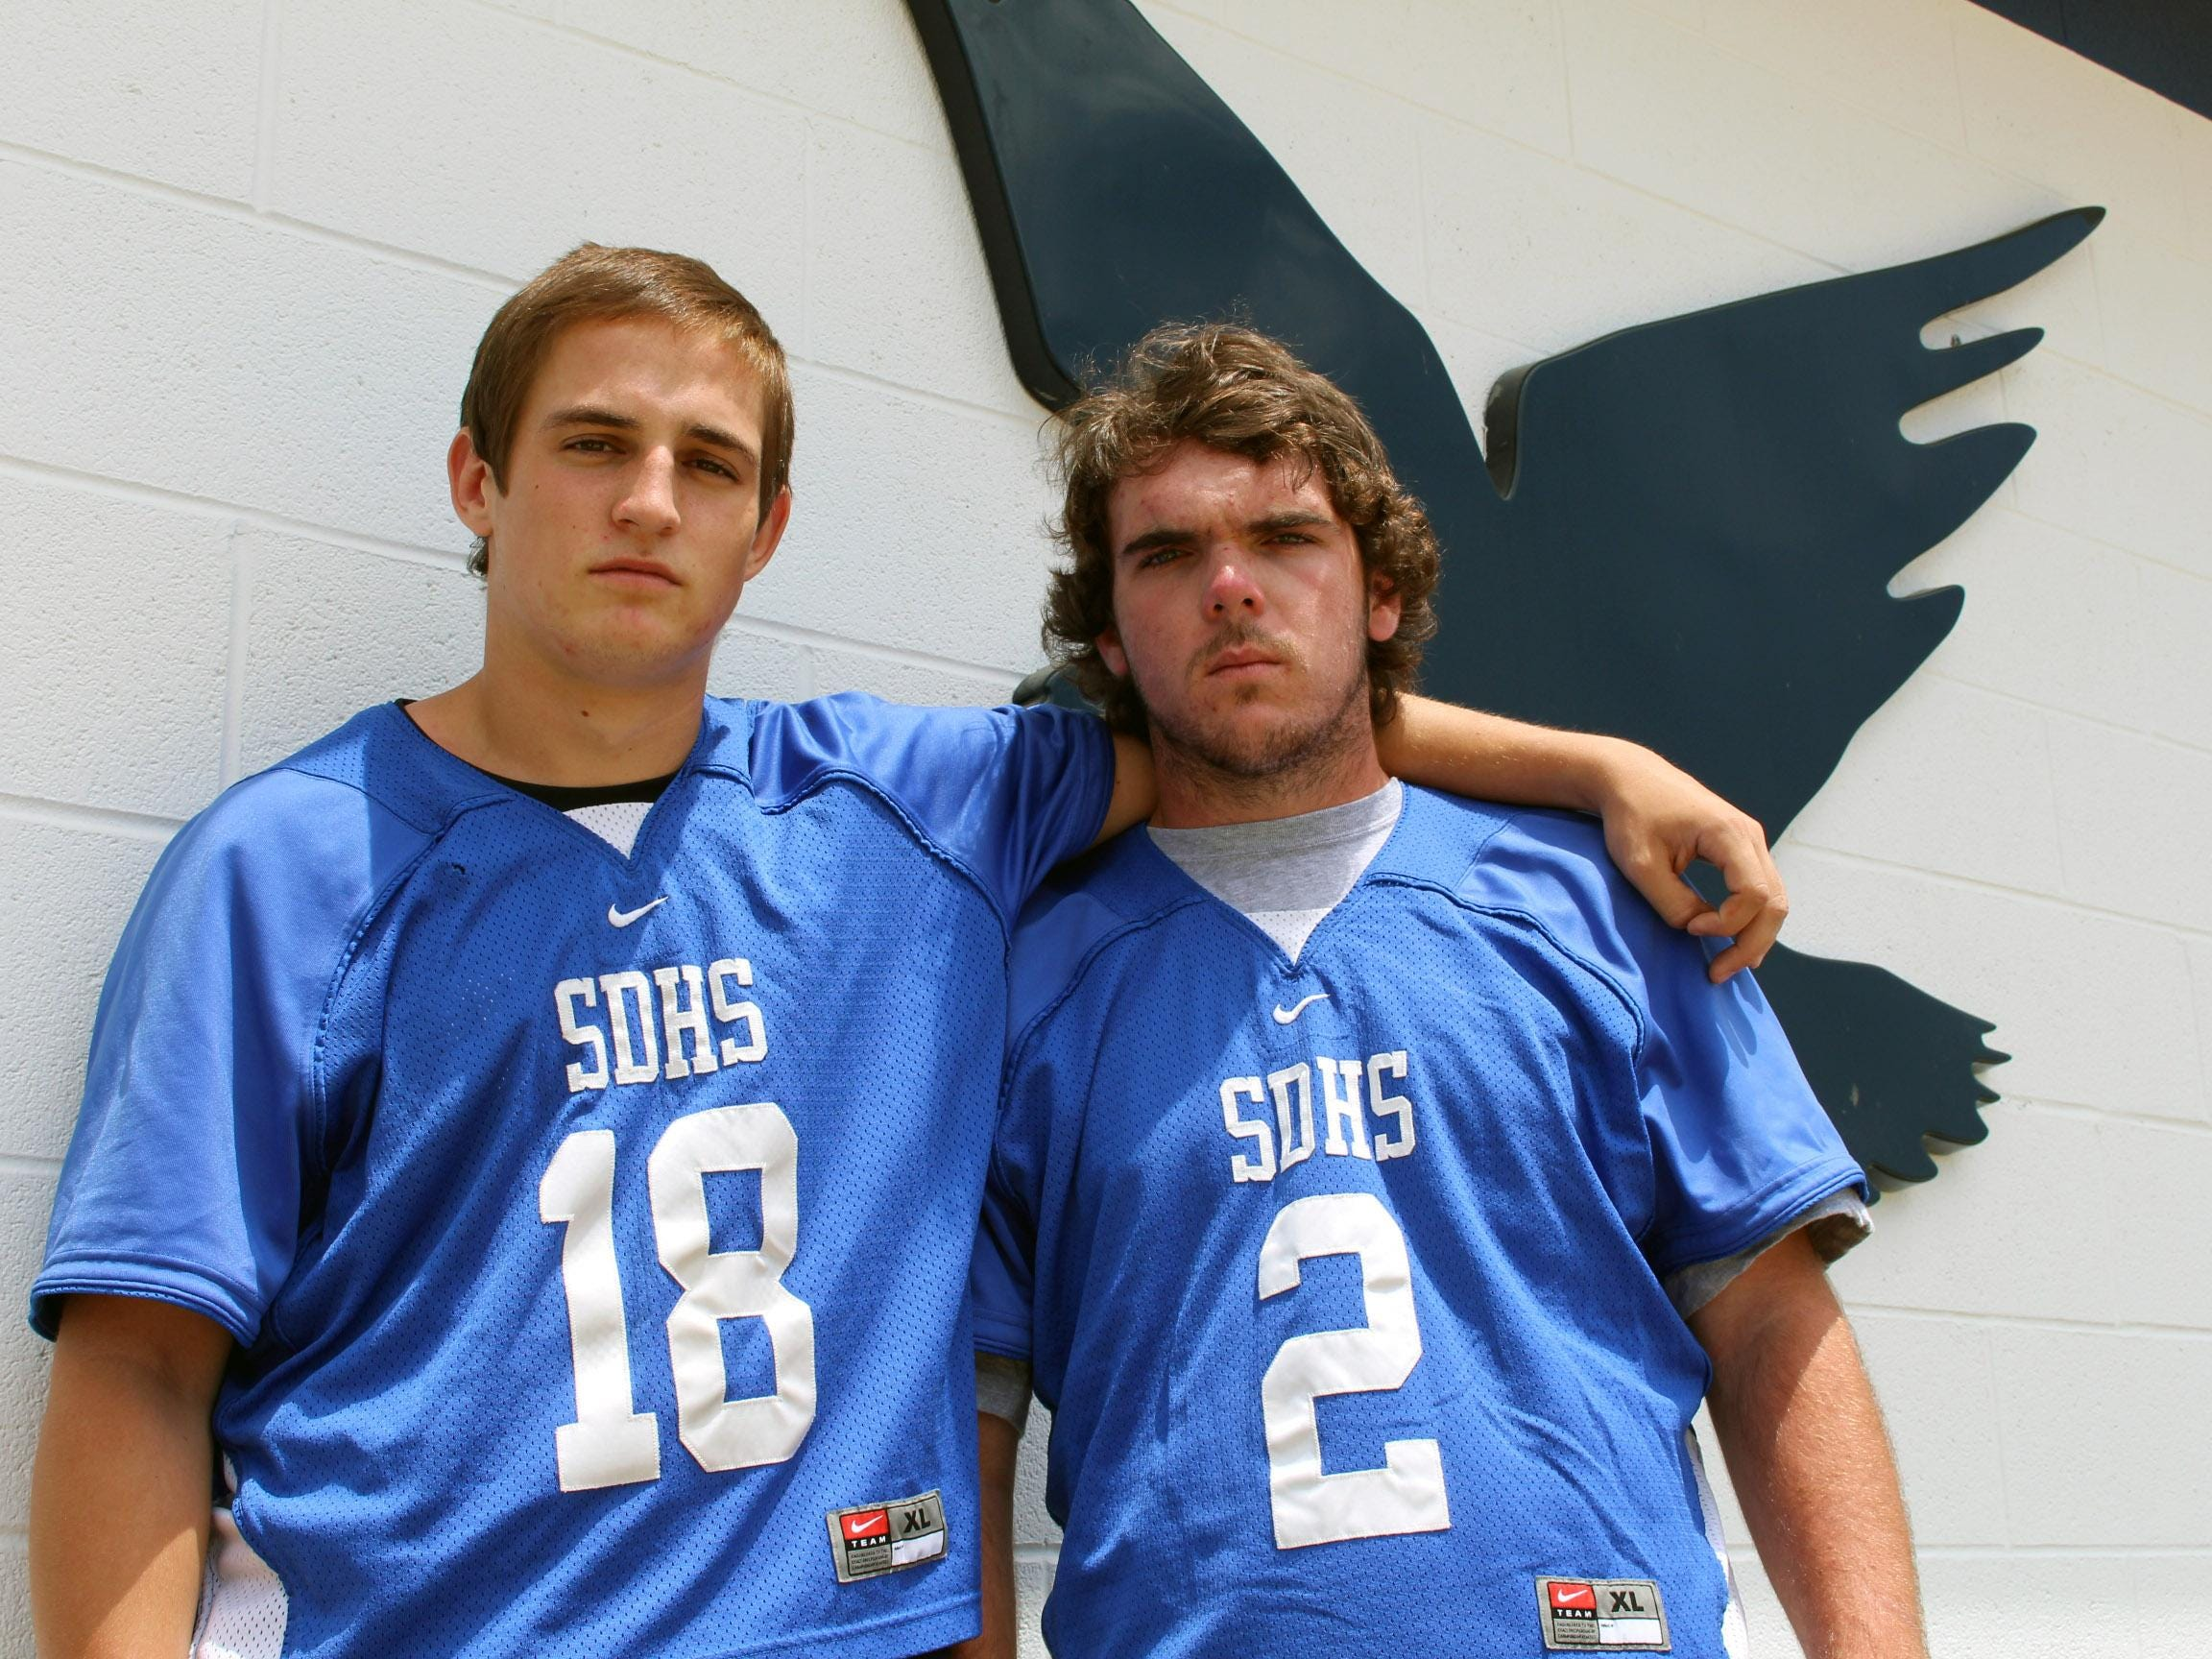 Stephen Decatur's Corey Gwin, left, and Will Hastings earned All-Bayside South Offensive and Defensive Players of the Year in their finals season for the Seahawks.